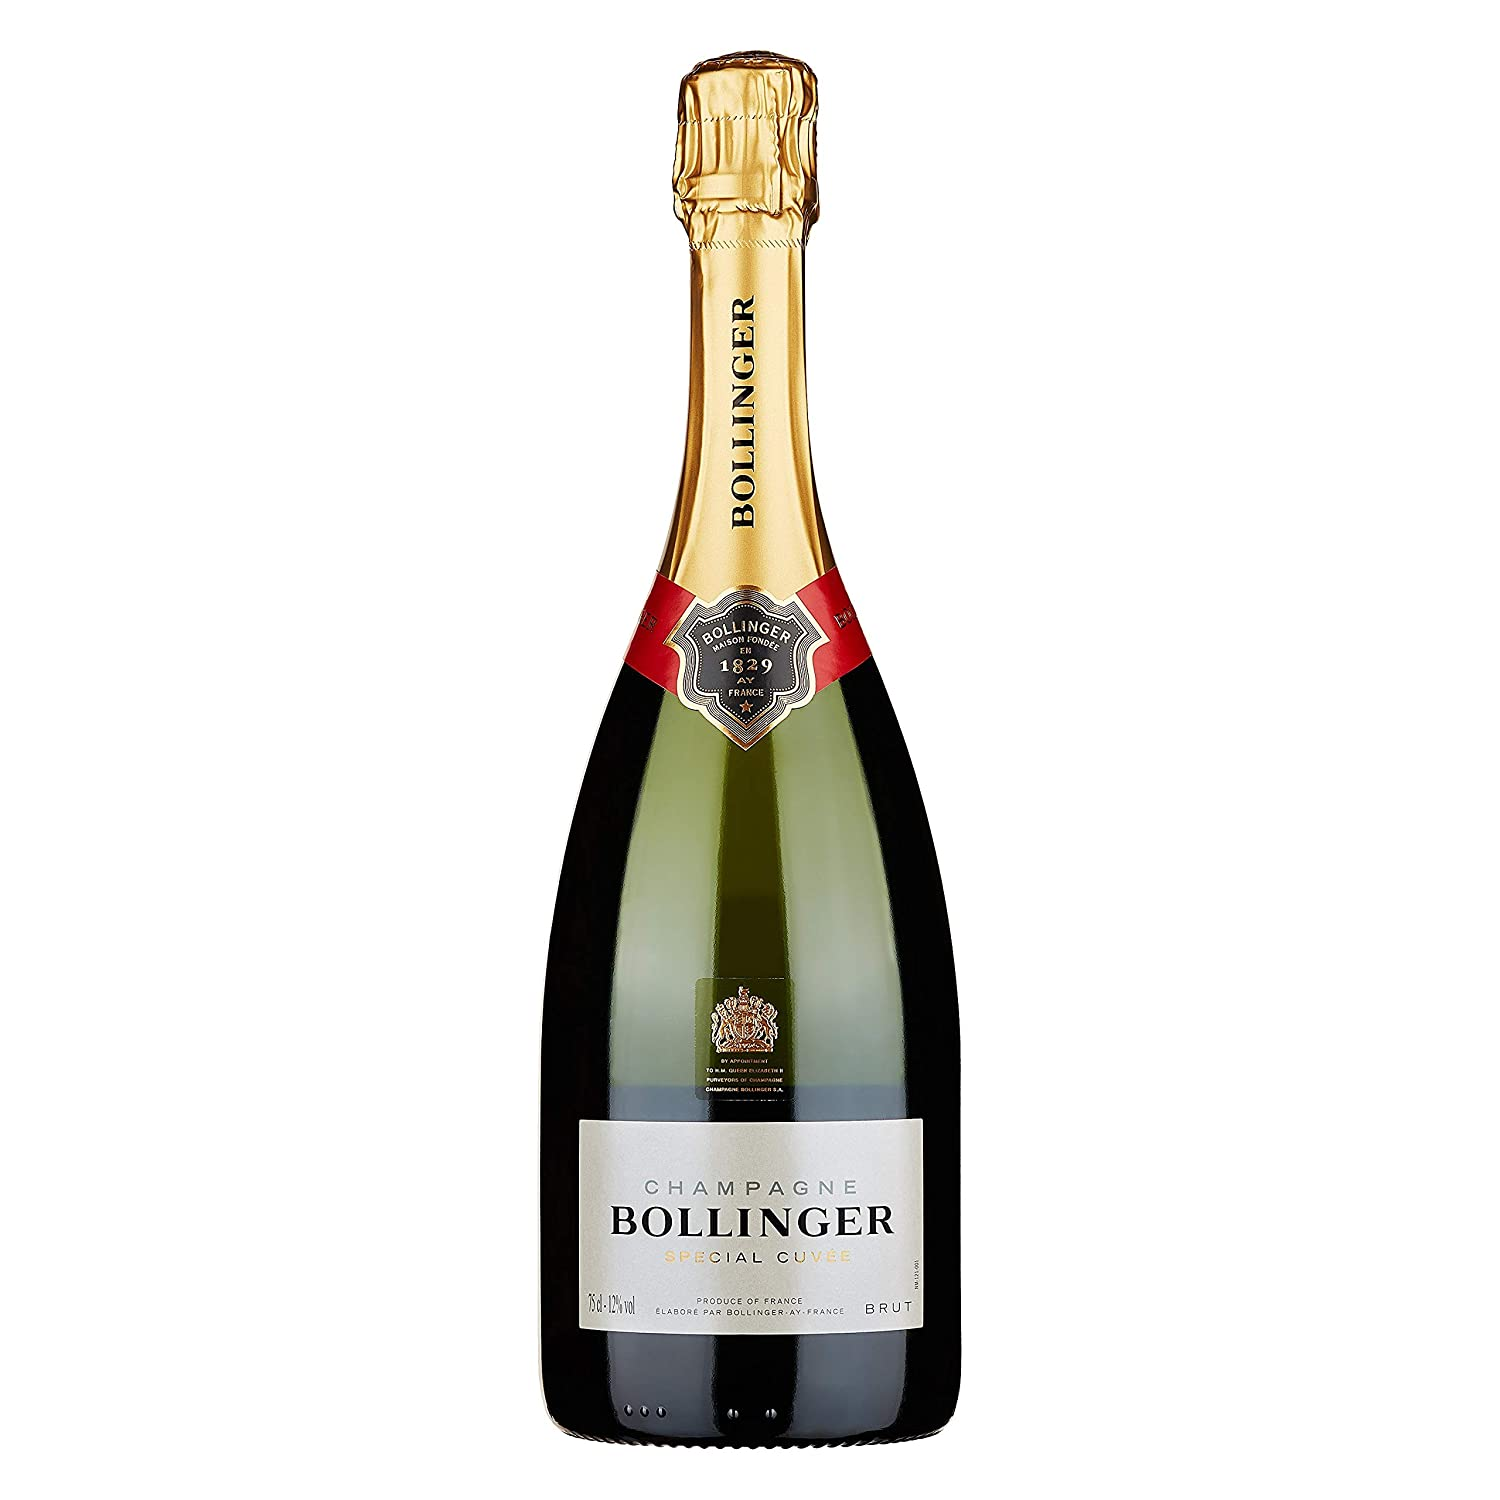 Topmoderne Bollinger Special Cuvée Champagne, 75cl: Amazon.co.uk: Grocery WM-19